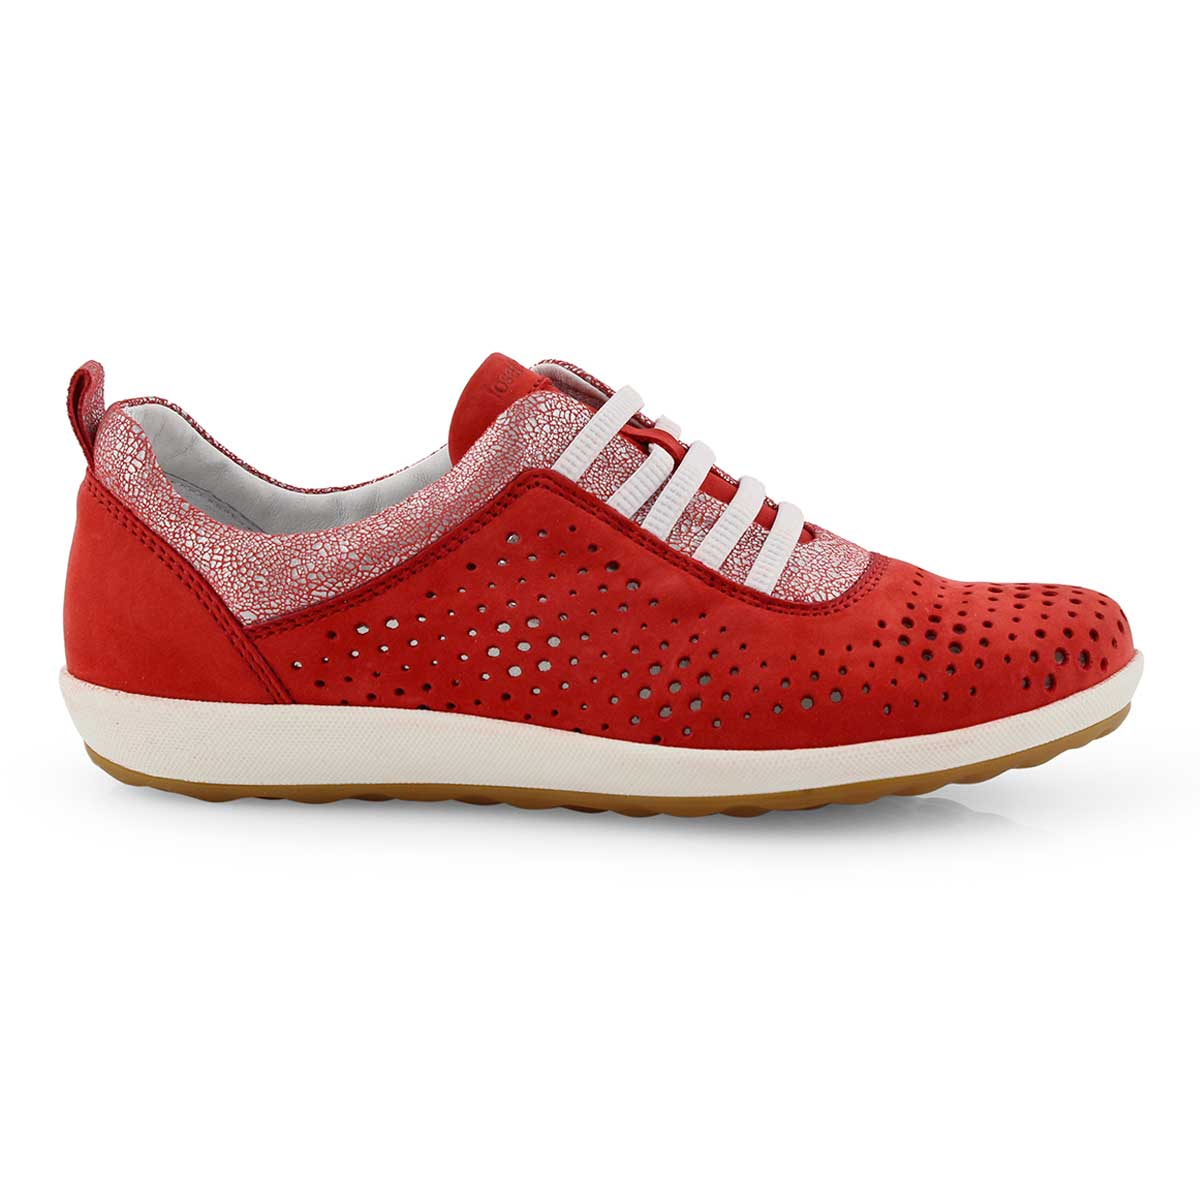 Lds Viola 01 red casual sneaker